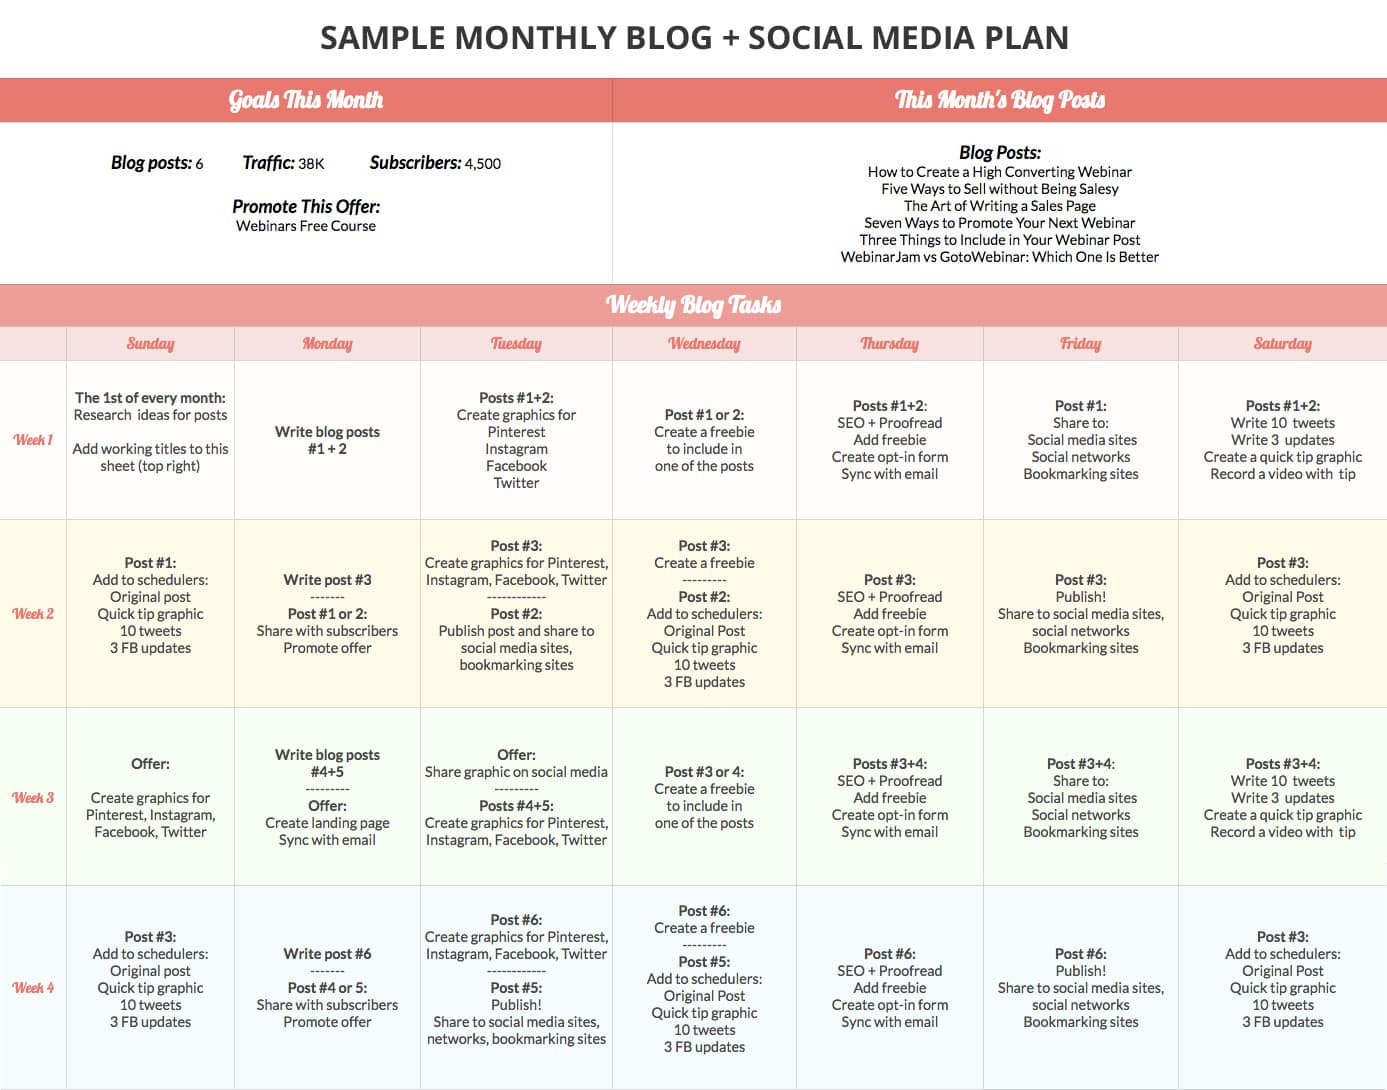 Monthly Blog + Social Media Plan Example